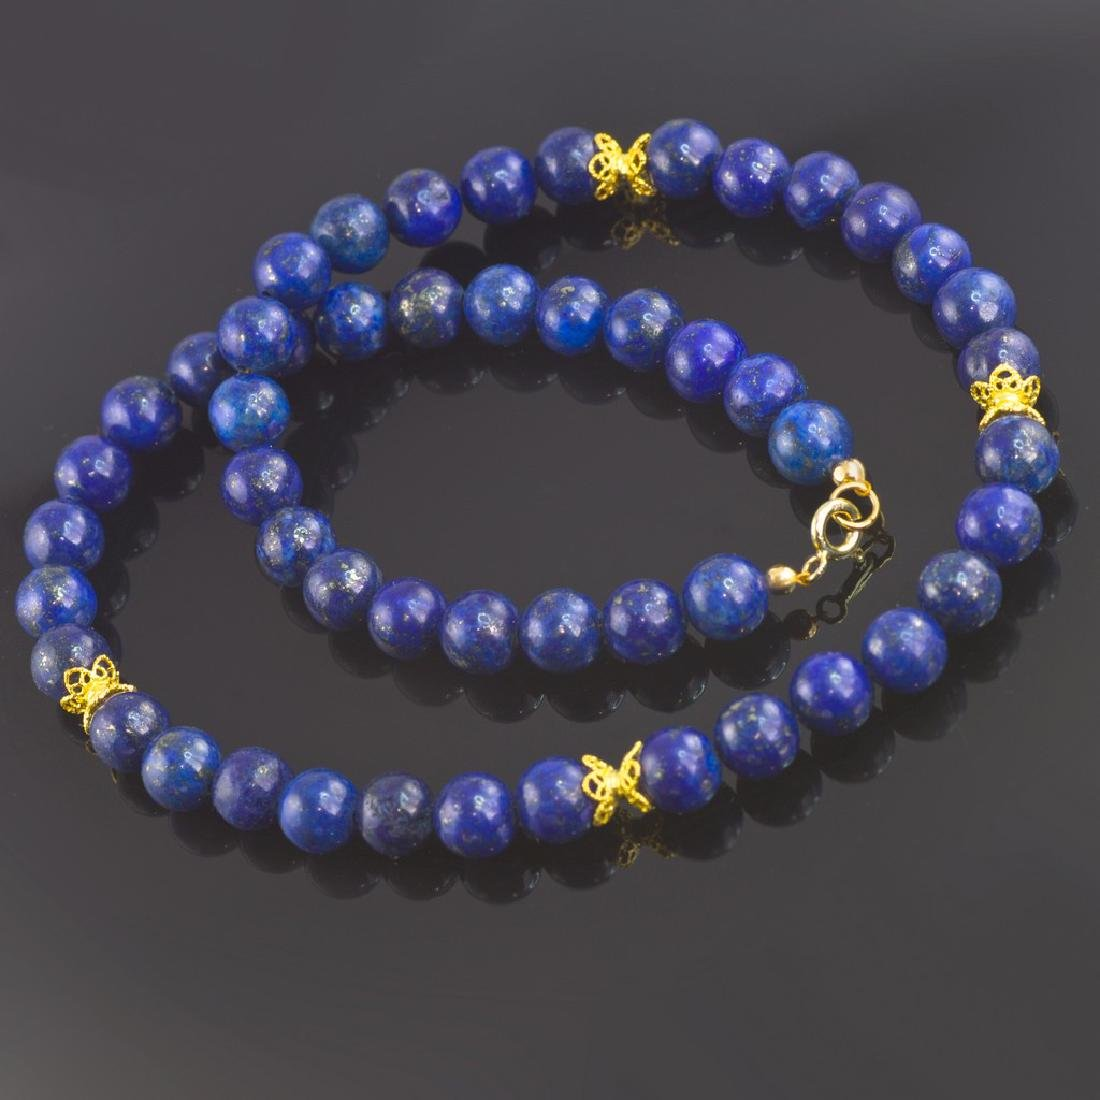 Lapis lazuli Necklace with Golden Accents - 3